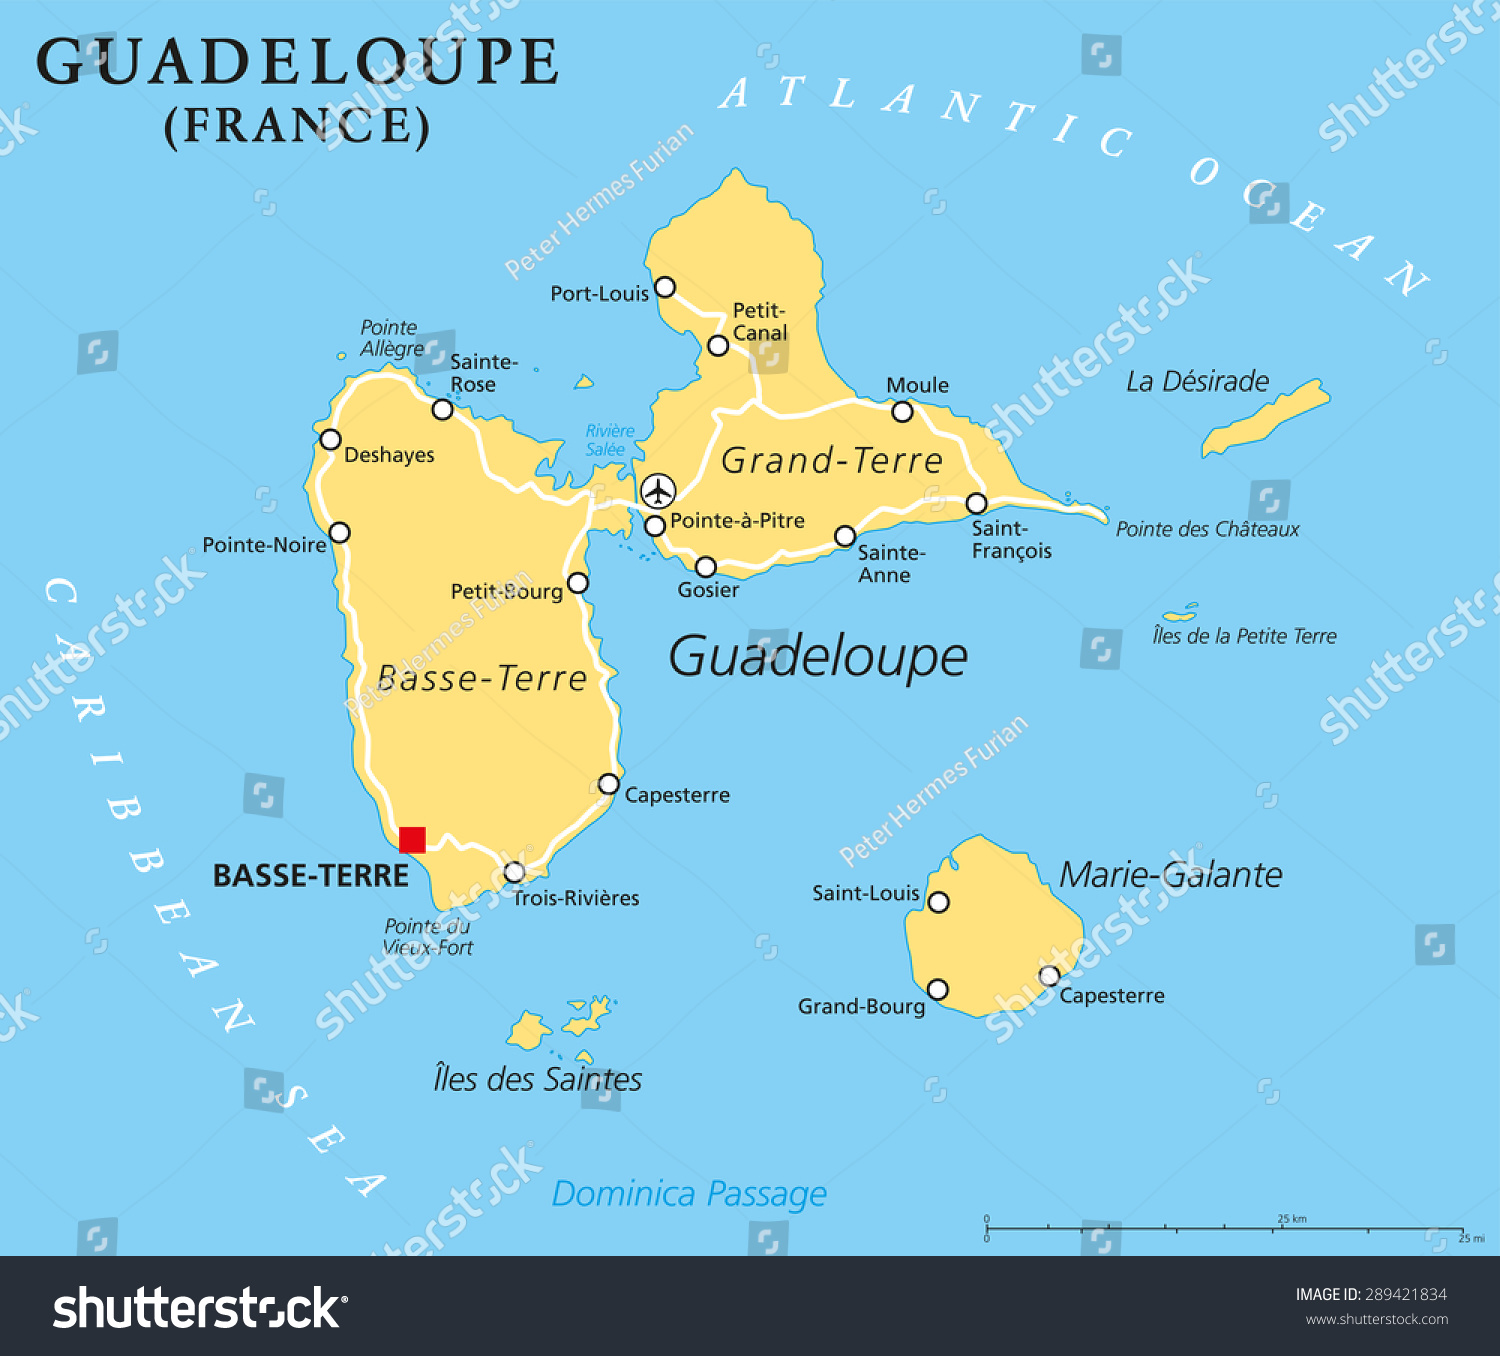 guadeloupe political map with capital basseterre an overseas region offrance located. guadeloupe political map capital basseterre overseas stock vector